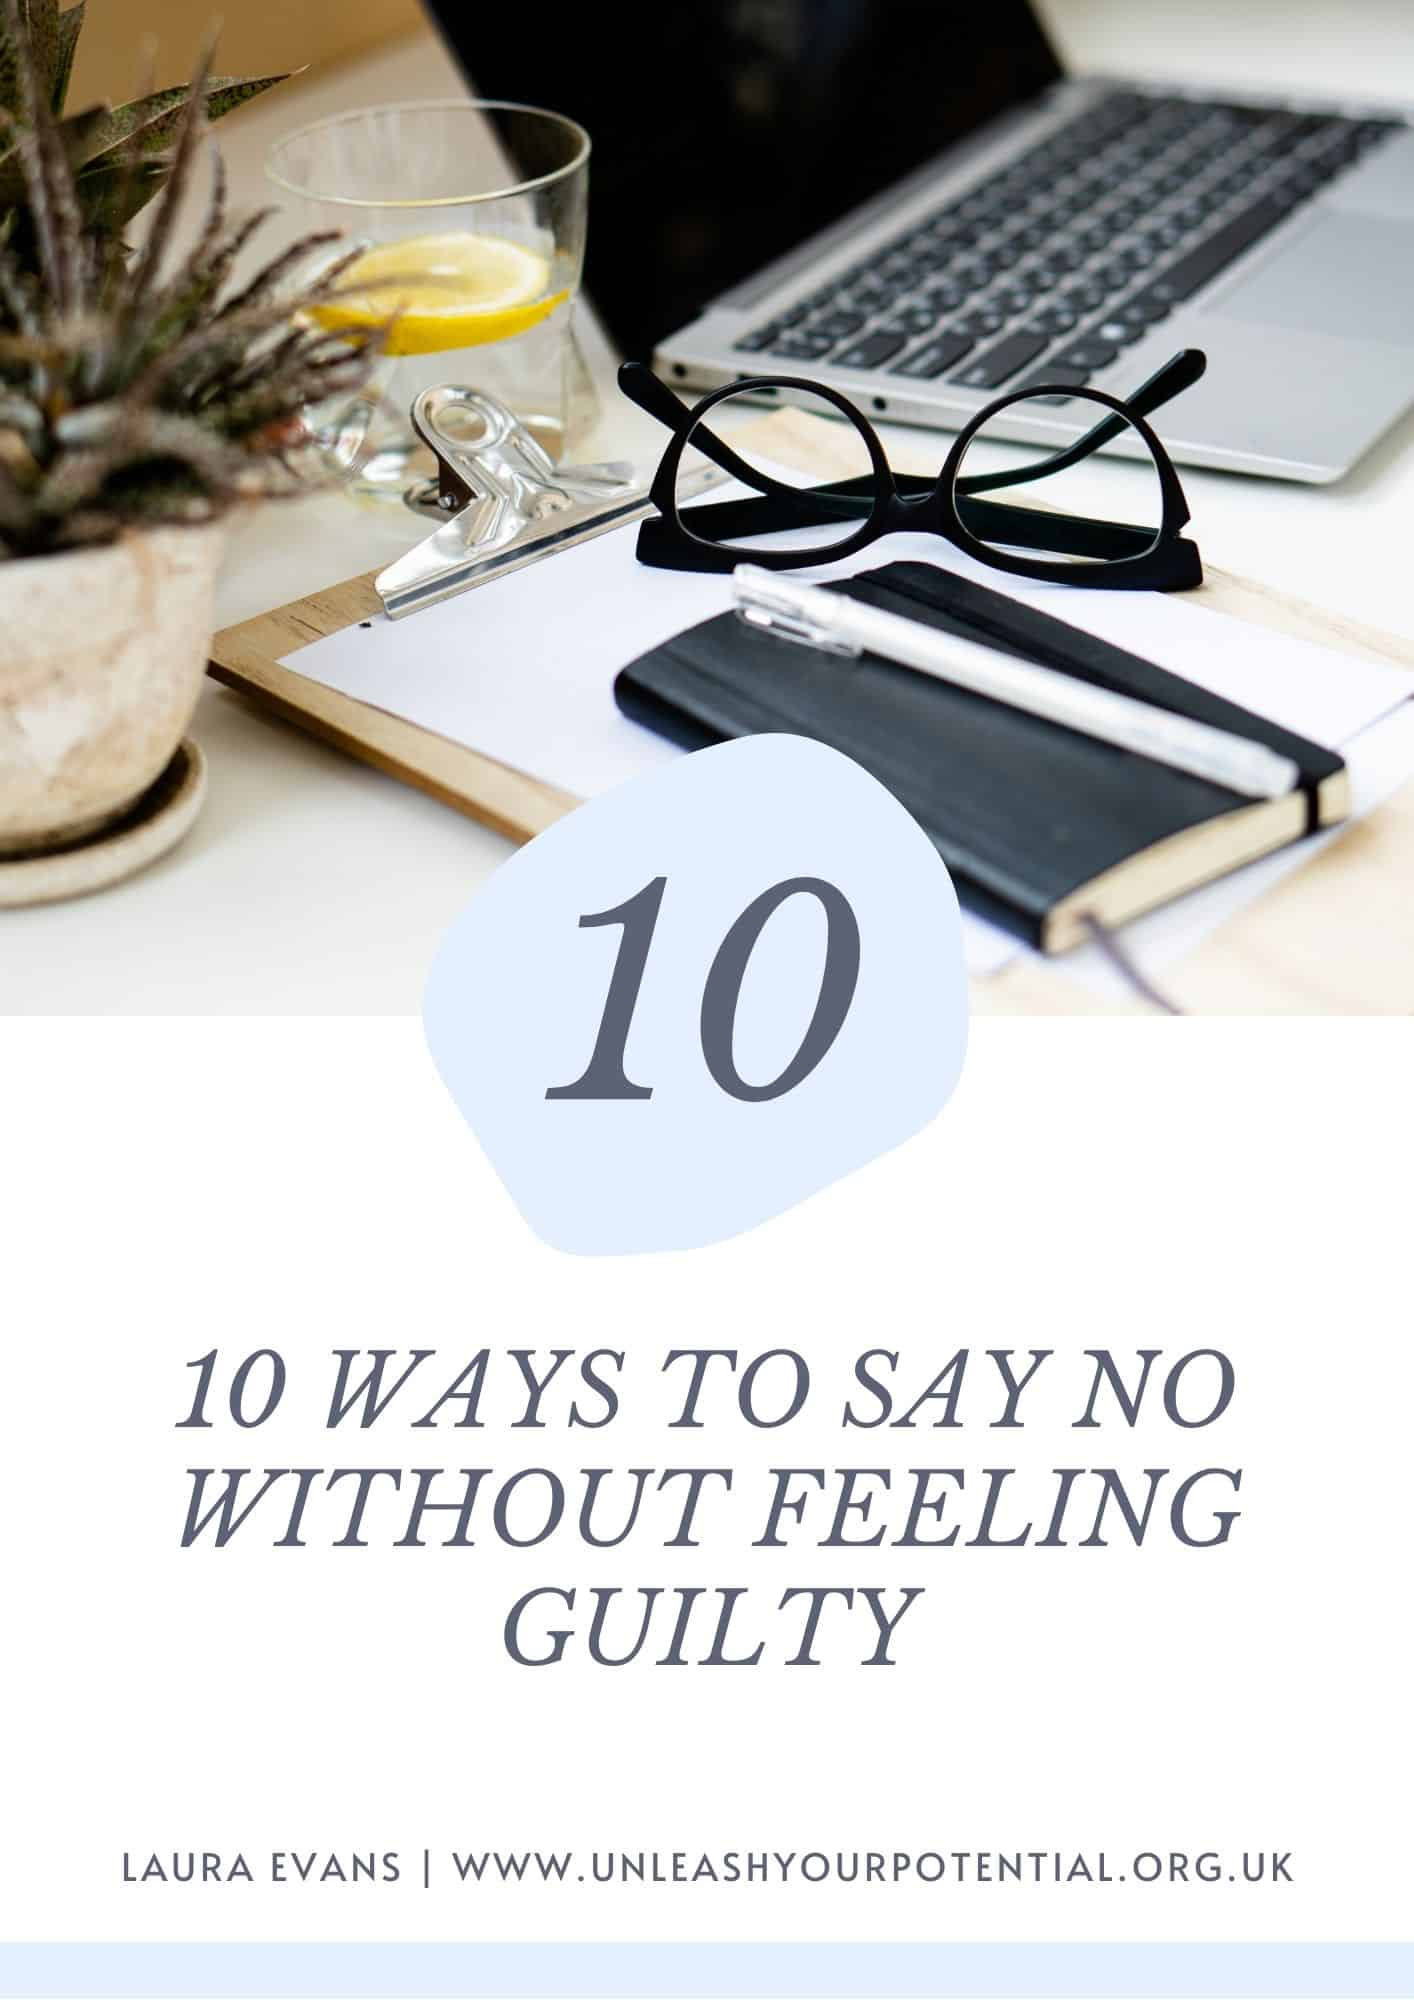 10 ways to say no without feeling guilty laura EVans Unleash Your Potential